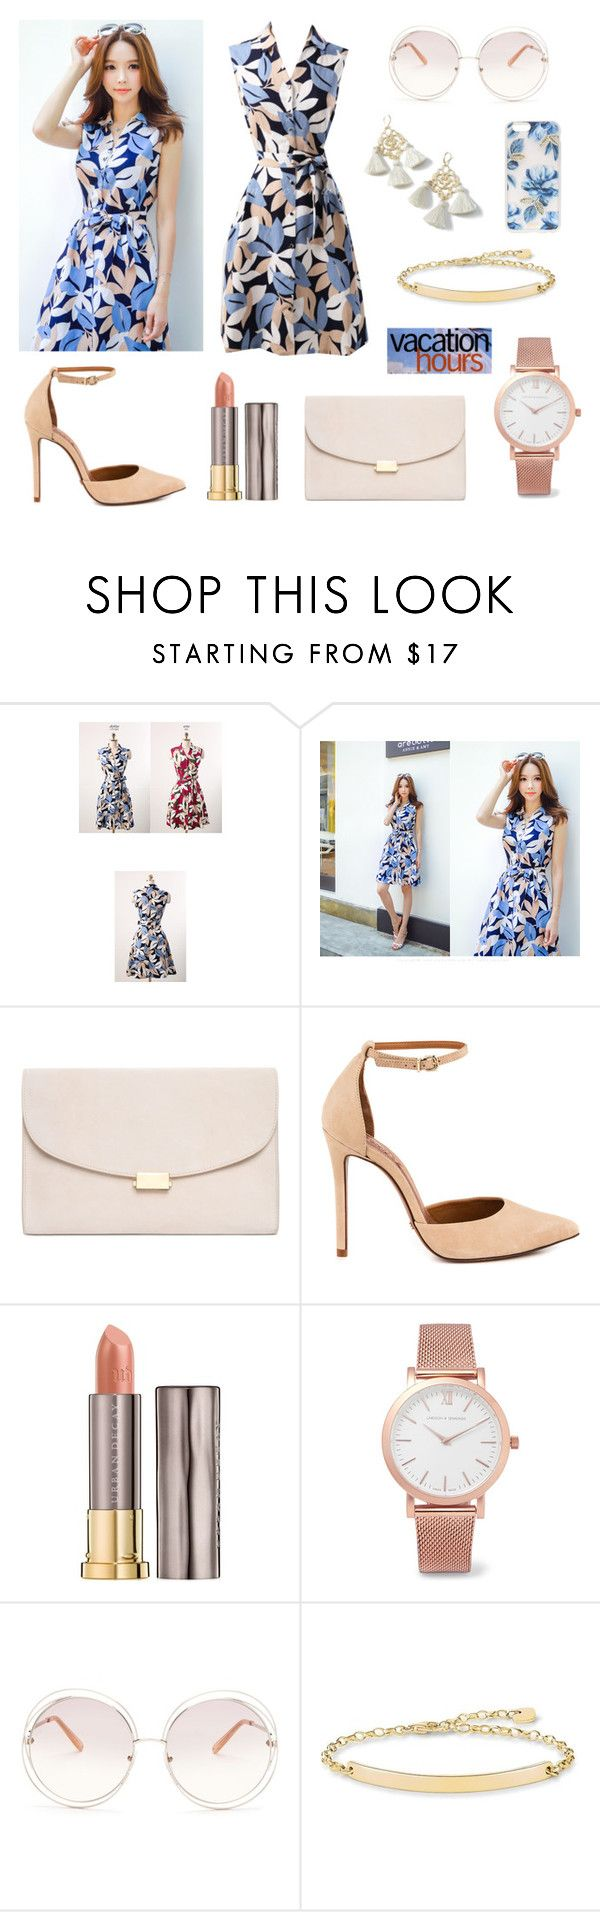 Styleonme_Floral Print Collared Sleeveless Dress by styleonme-kr on Polyvore featuring Schutz, Mansur Gavriel, Larsson & Jennings, Chloé, Sonix, Urban Decay and Marte Frisnes